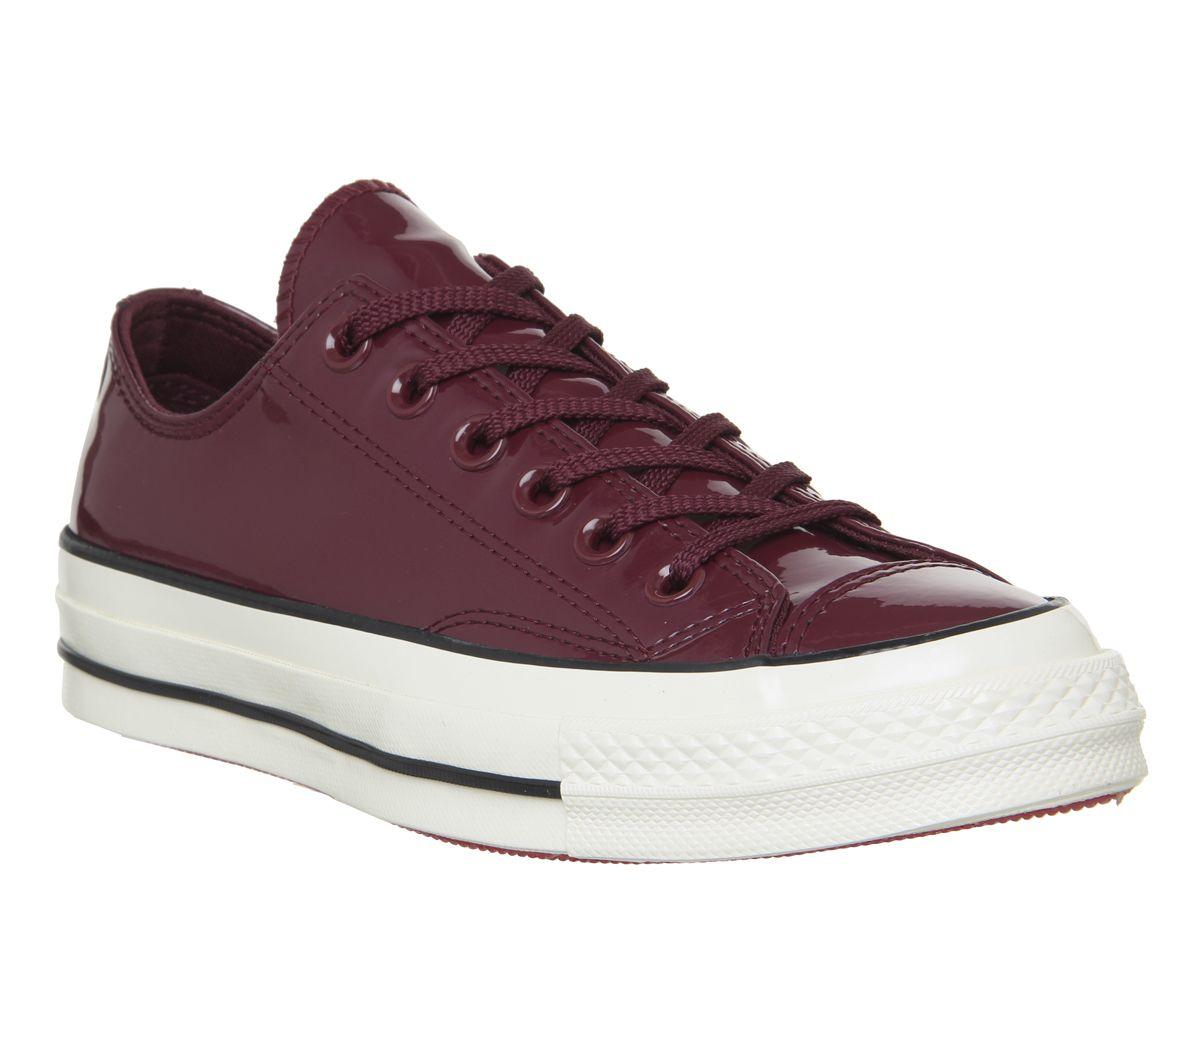 783cb5d84b42 Converse All Star Ox 70s Trainers in Purple for Men - Lyst